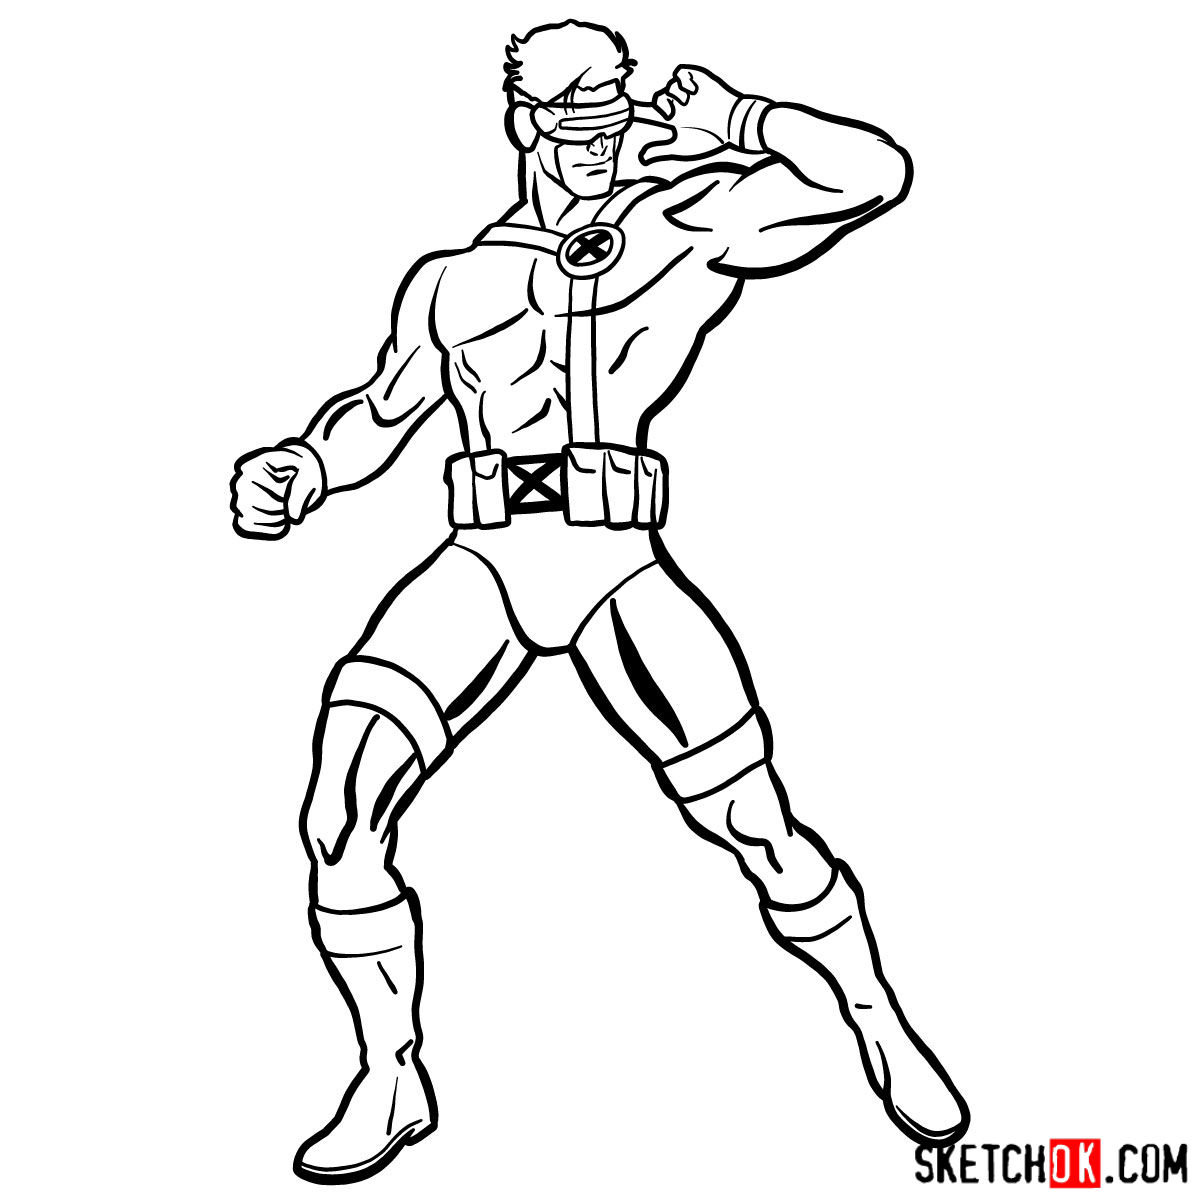 How to draw Cyclops from X-Men - step 16